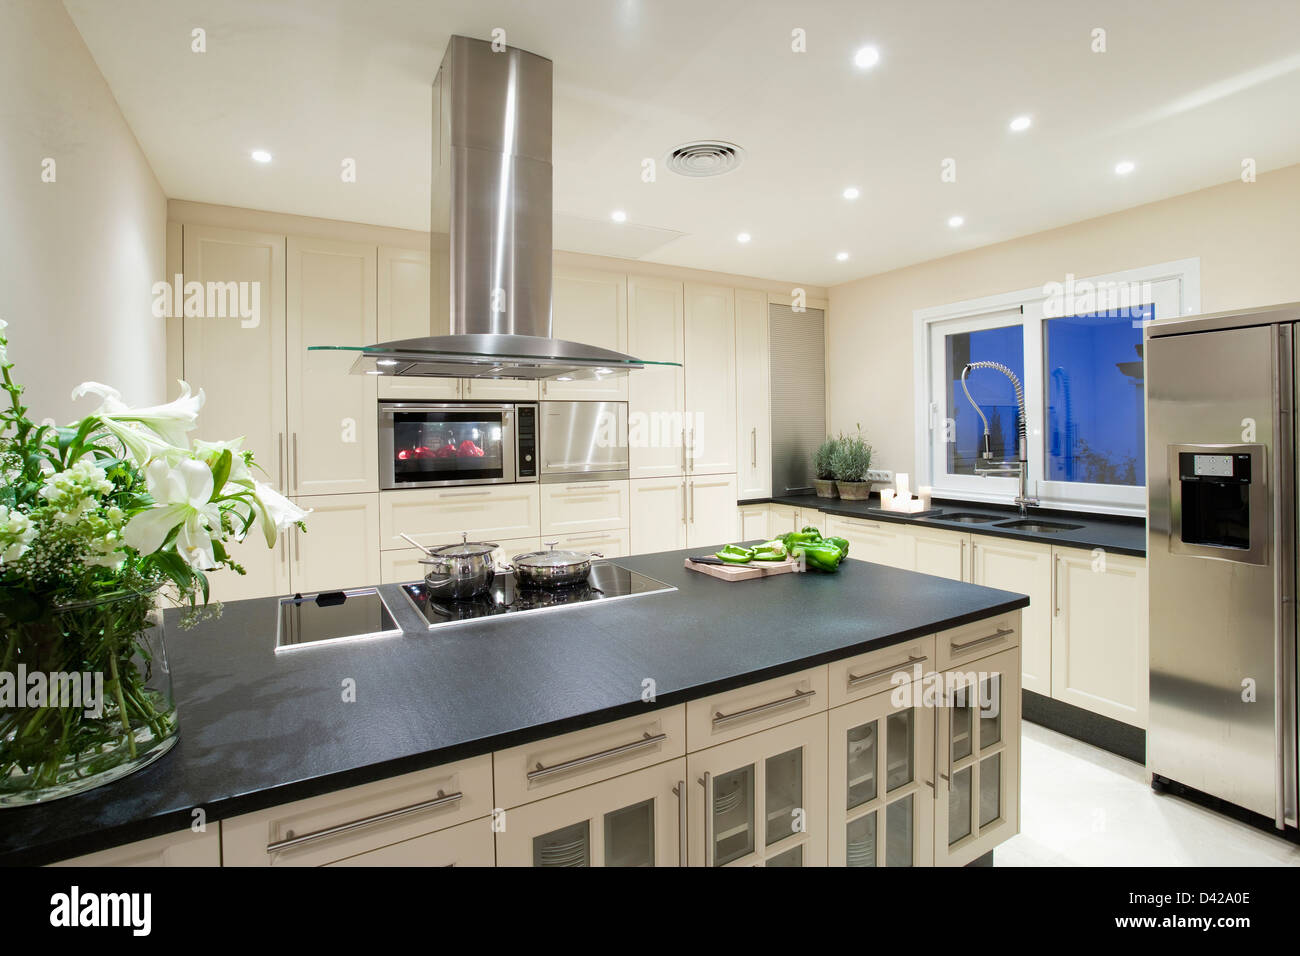 Kitchen Island Extractor fine kitchen island hob installed on with overhead extractor in